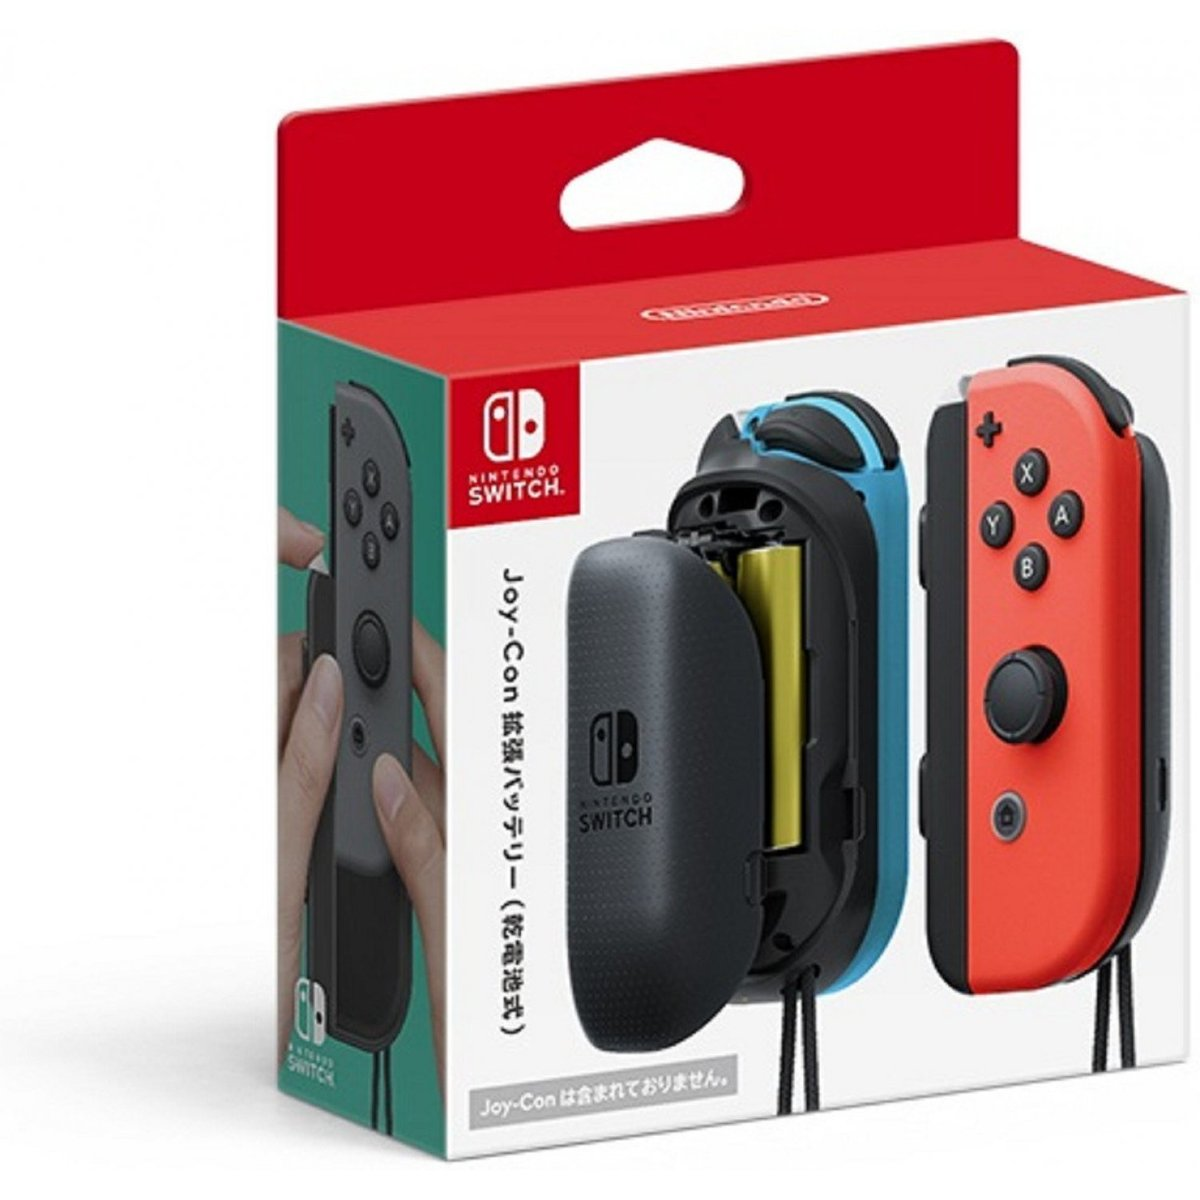 JOY-CON EXTENDED BATTERY (DRY CELL)